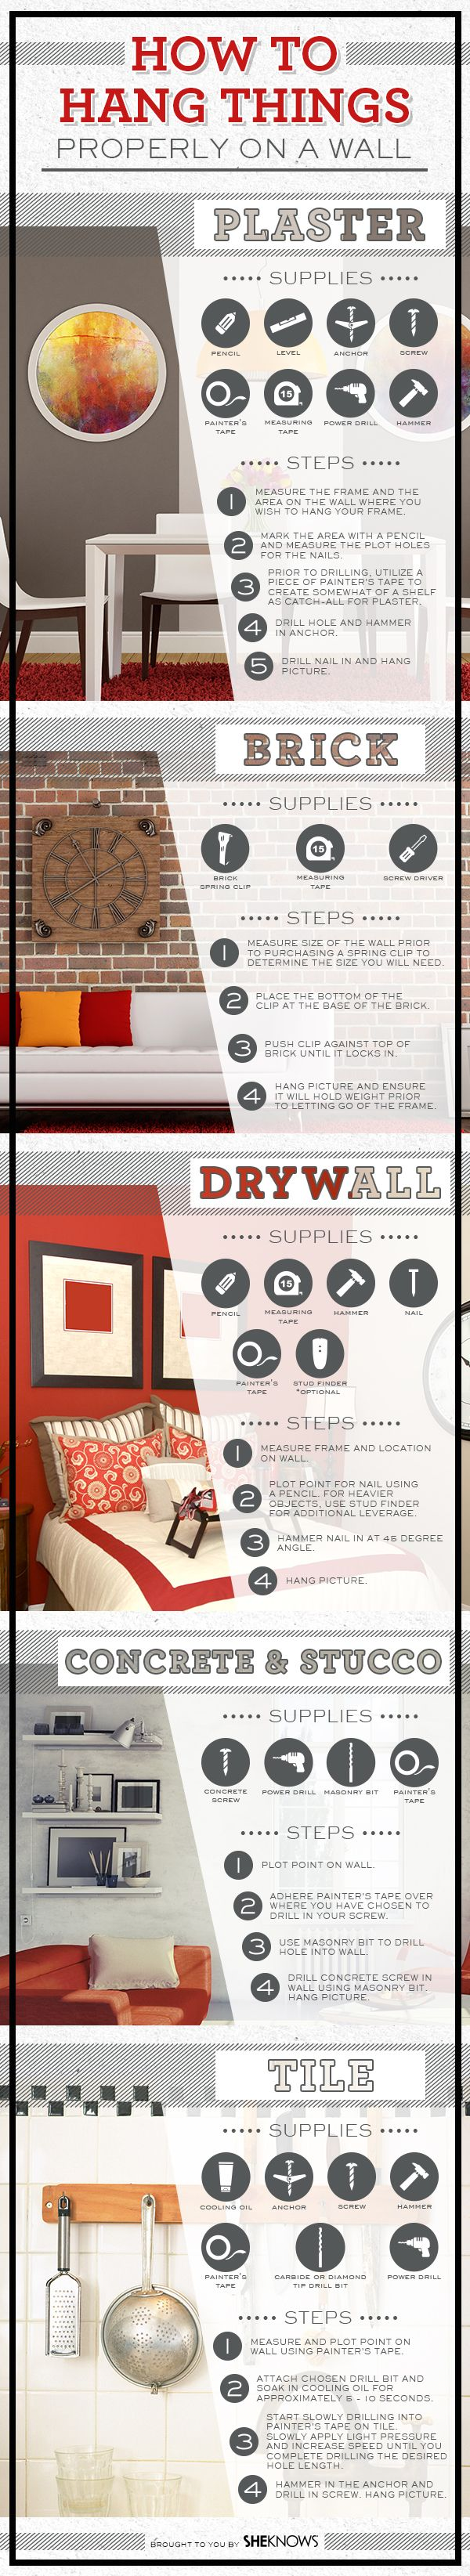 25 best ideas about shoe wall on pinterest diy shoe storage shoe display and utility room ideas. Black Bedroom Furniture Sets. Home Design Ideas